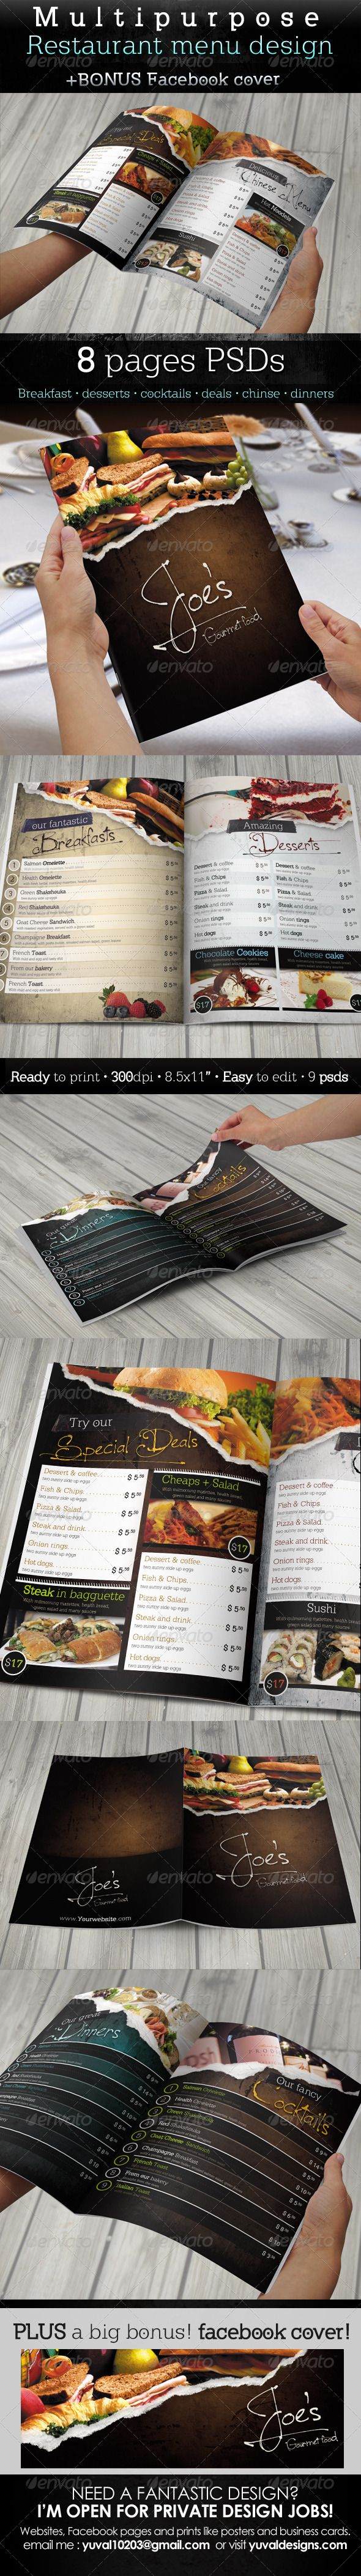 Multipurpose Restaurant Menu Template - Food Menus Print Templates Download here : http://graphicriver.net/item/multipurpose-restaurant-menu-template/4105004?s_rank=1407&ref=Al-fatih